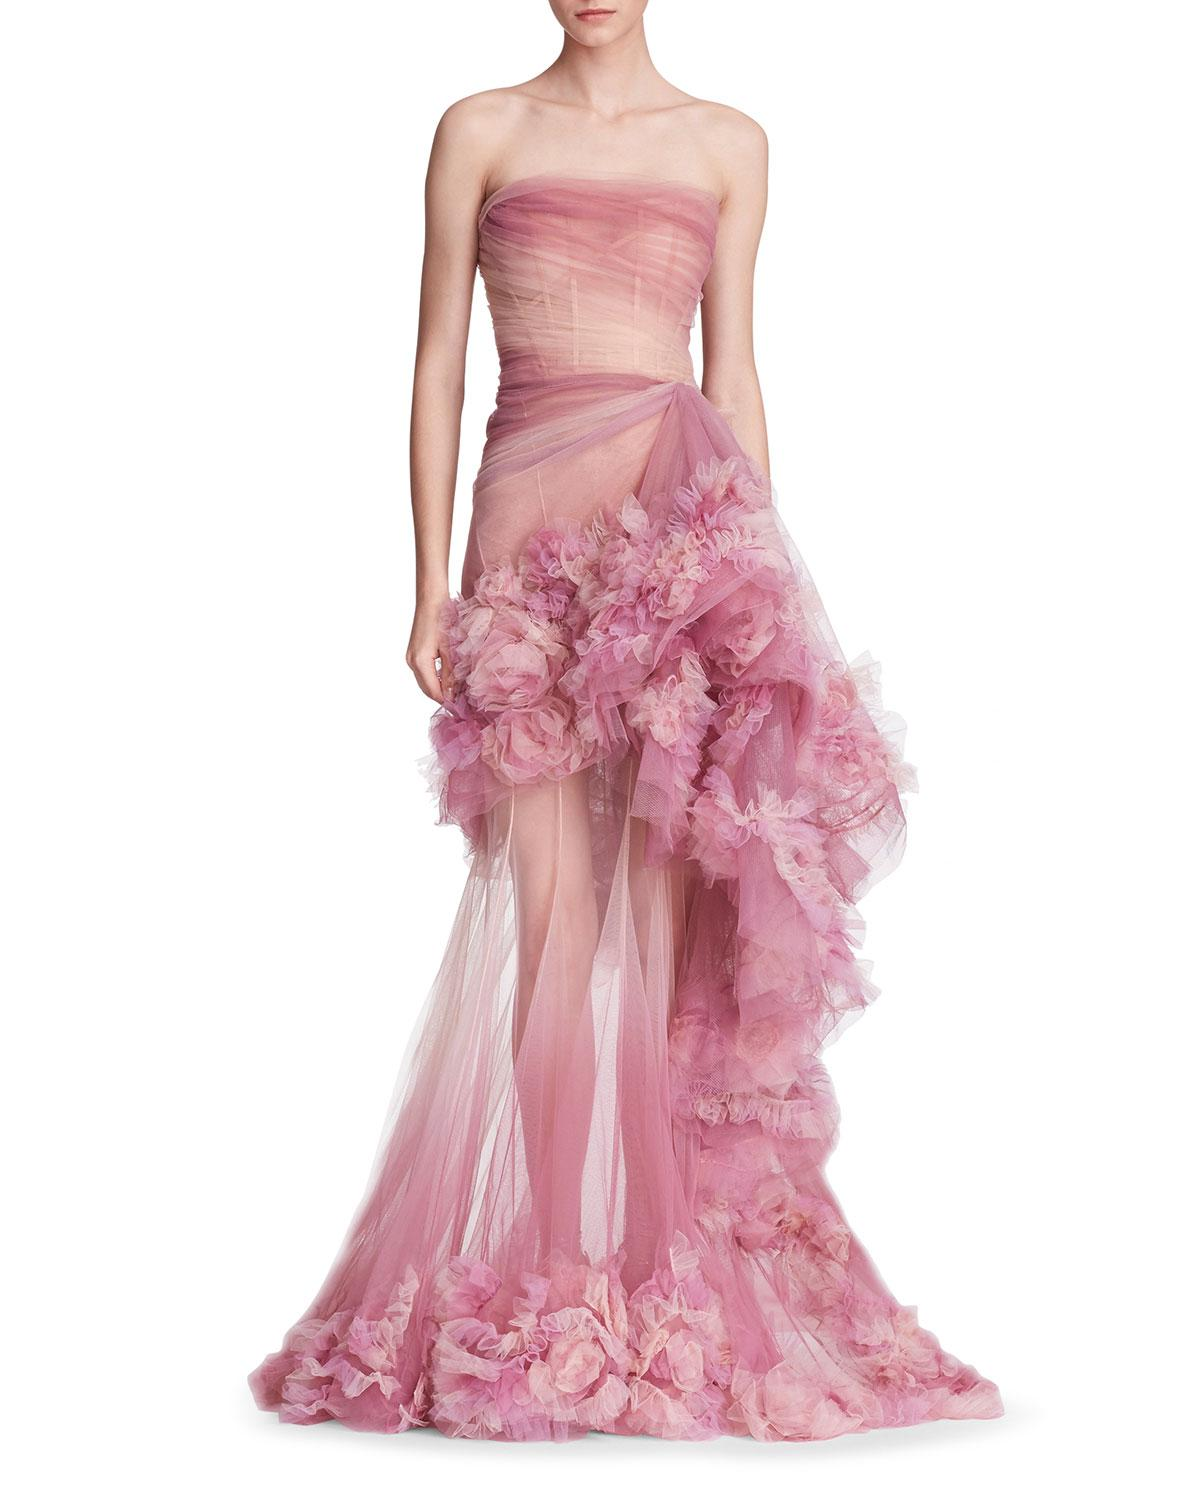 88e8ba31 Marchesa Strapless Ombre Tulle Peplum Gown in Pink - Lyst